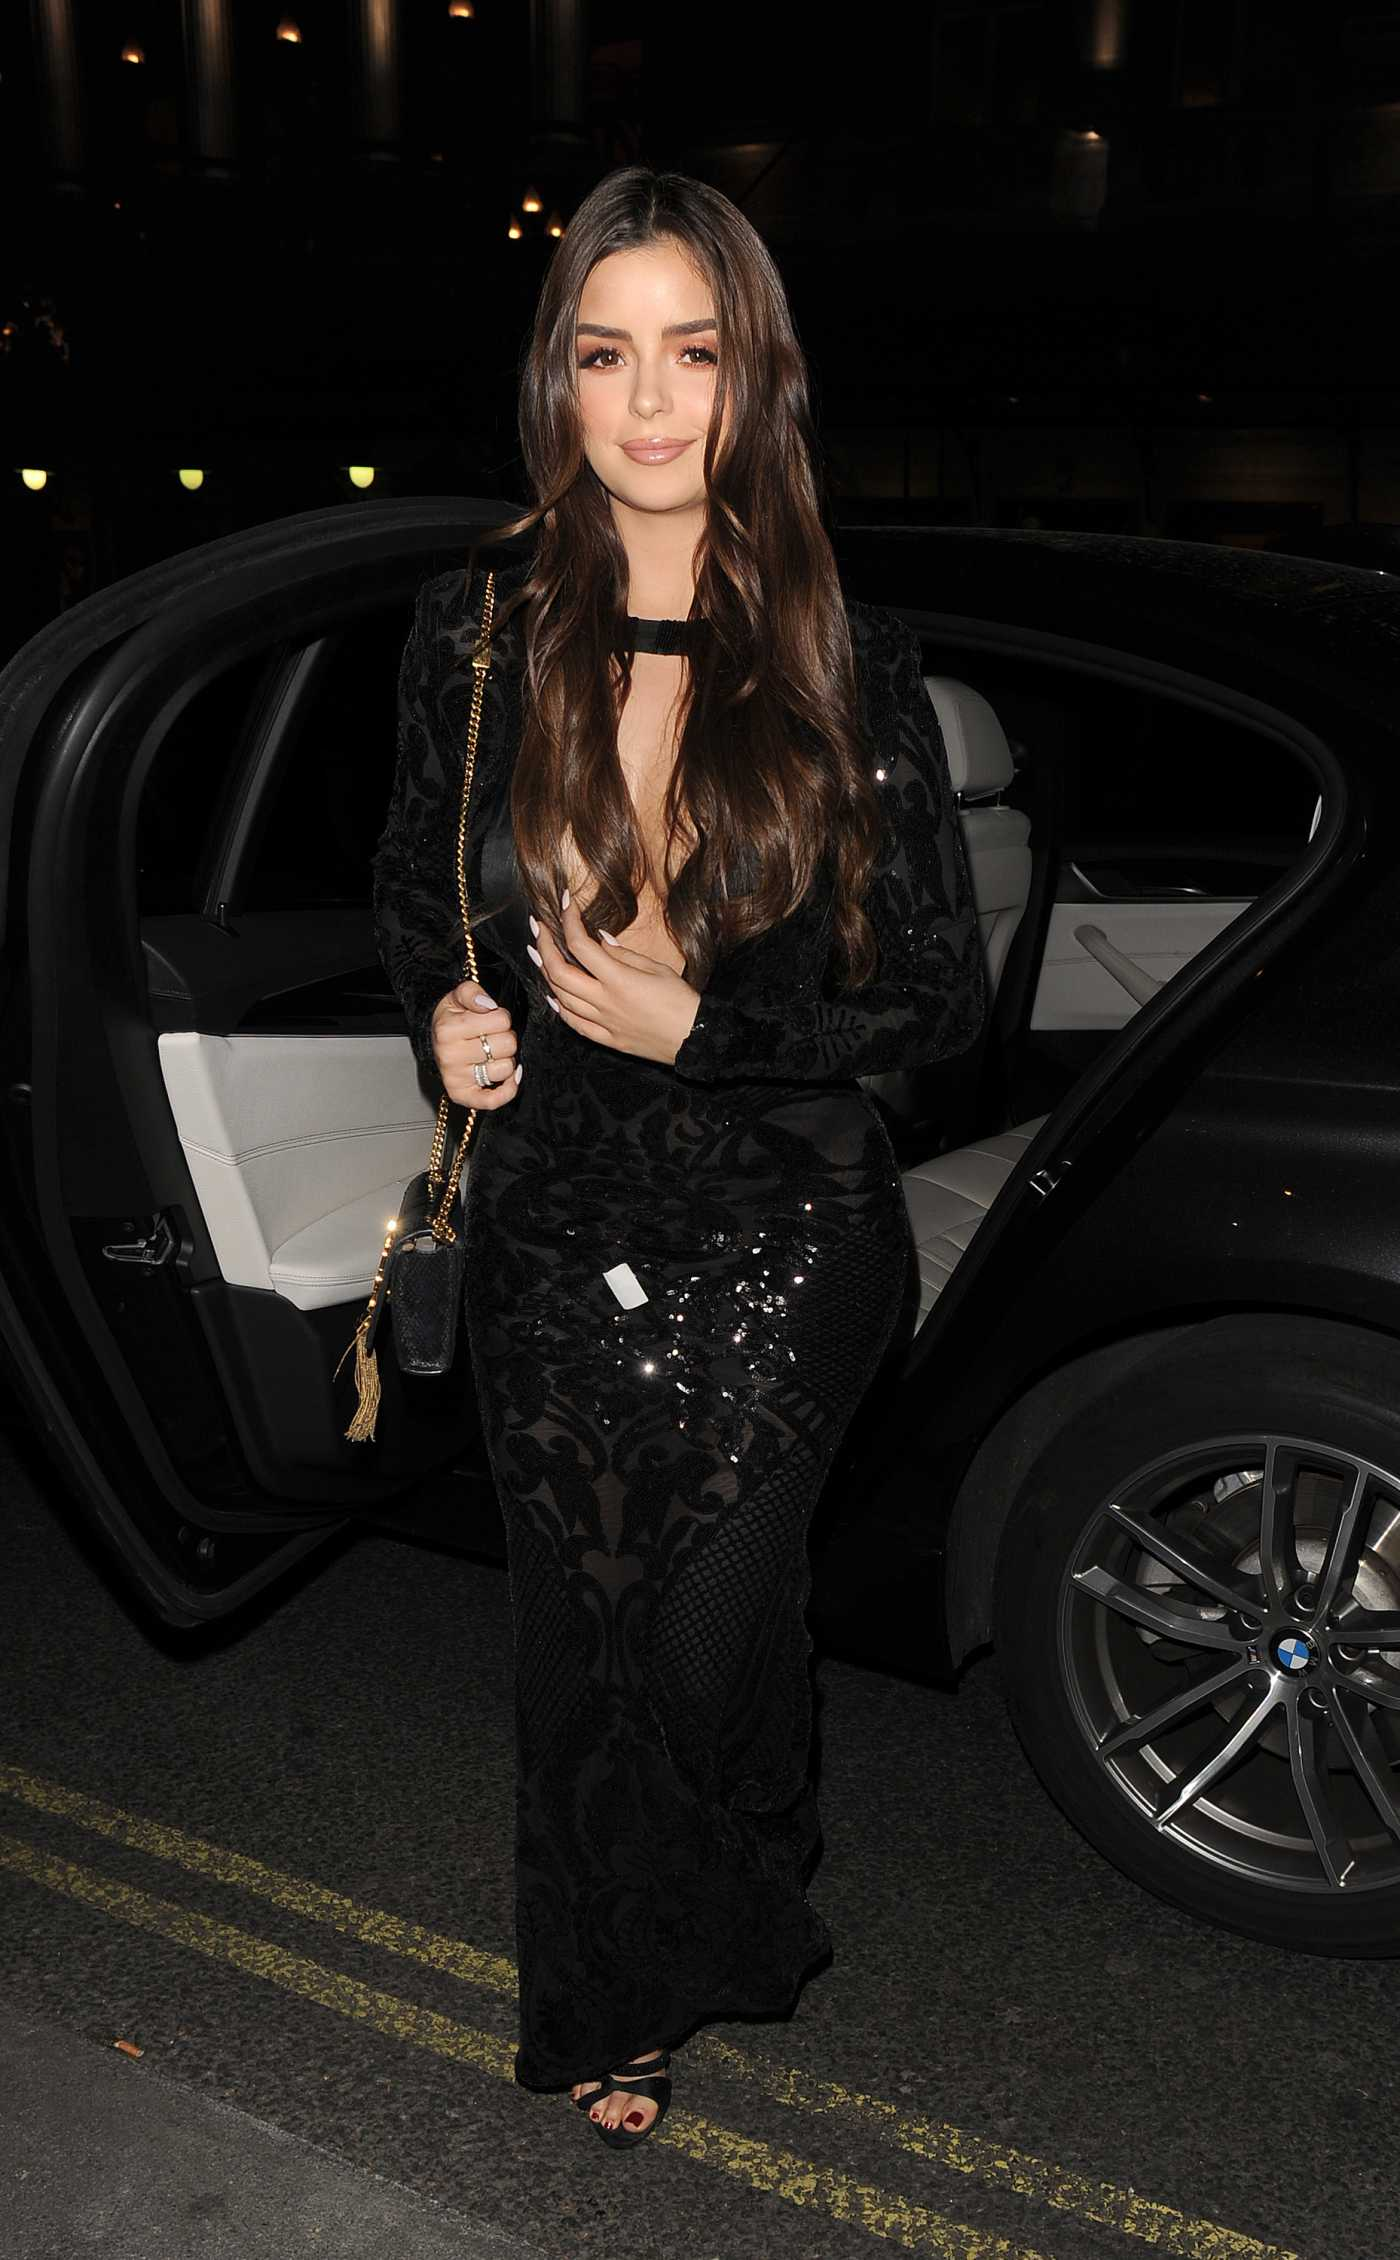 Demi Rose in a Black Dress Arrives for A Dinner in Mayfair, London 04/24/2019